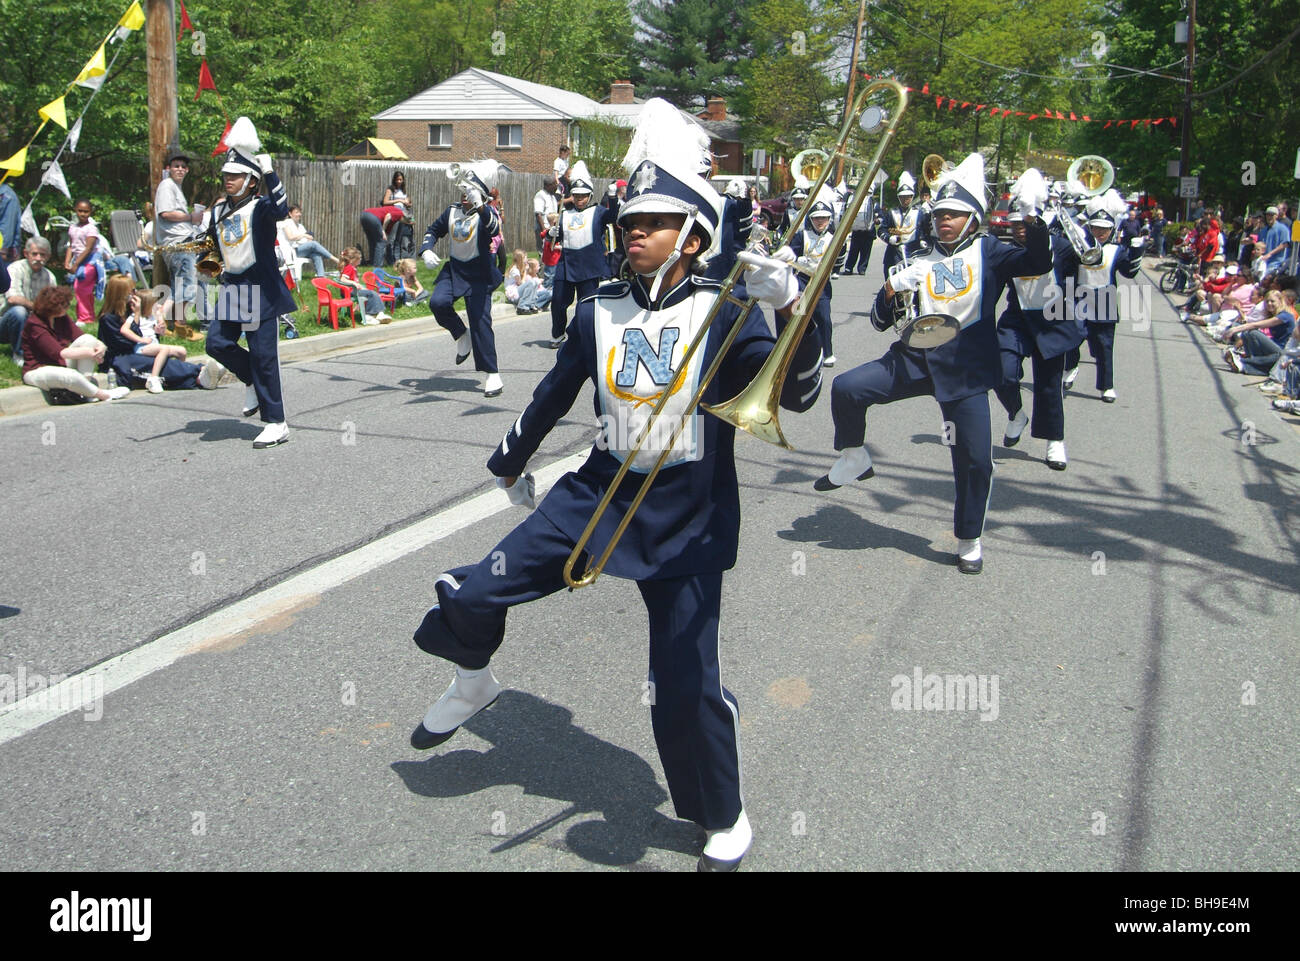 members of a high school's marching band in the Berwyn Heights, Md parade - Stock Image